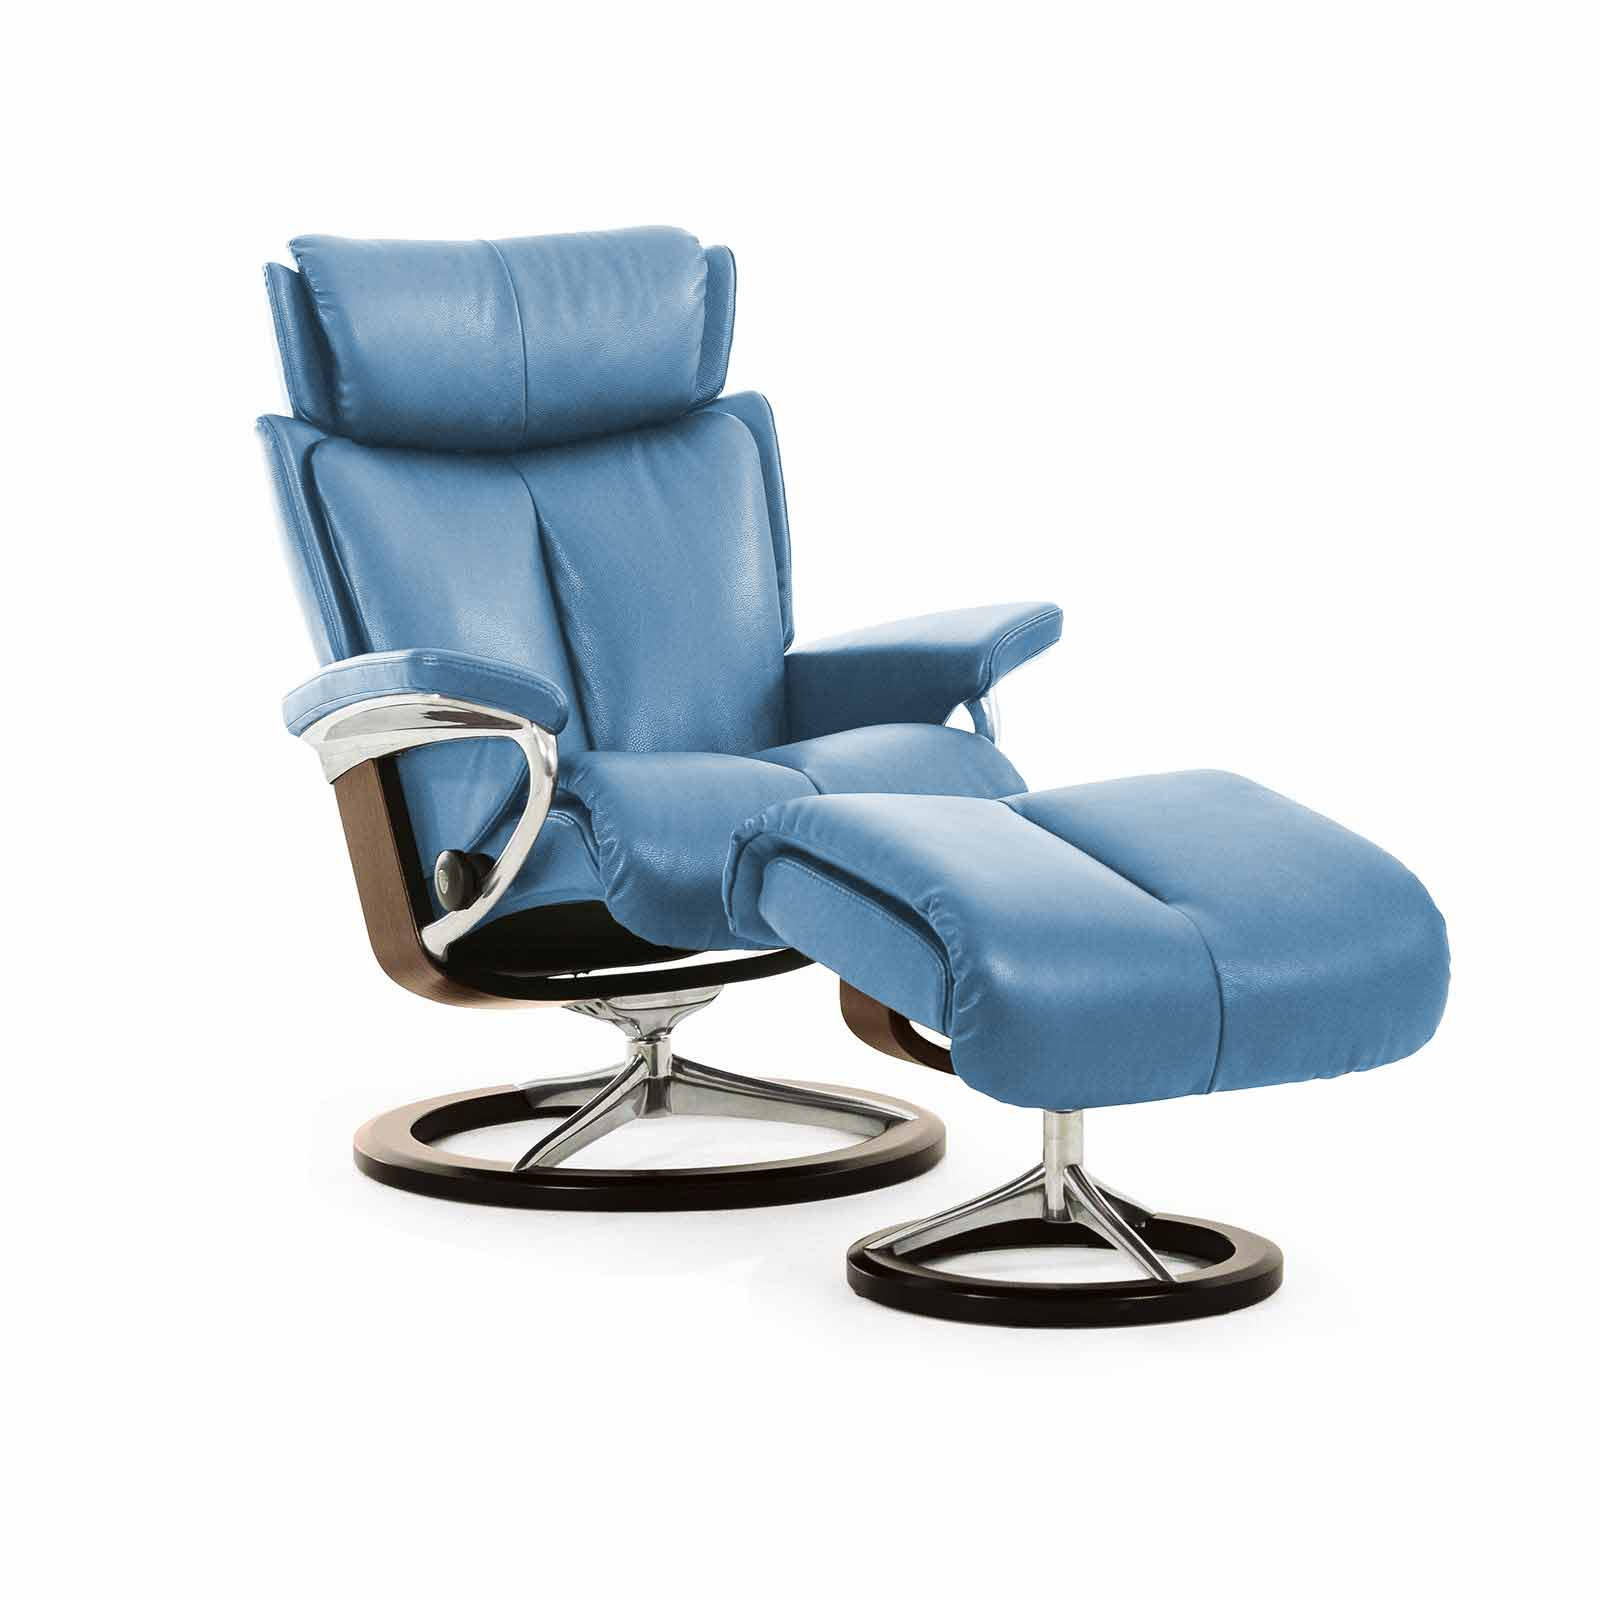 stressless sessel magic paloma sparrow blue signature mit hocker. Black Bedroom Furniture Sets. Home Design Ideas